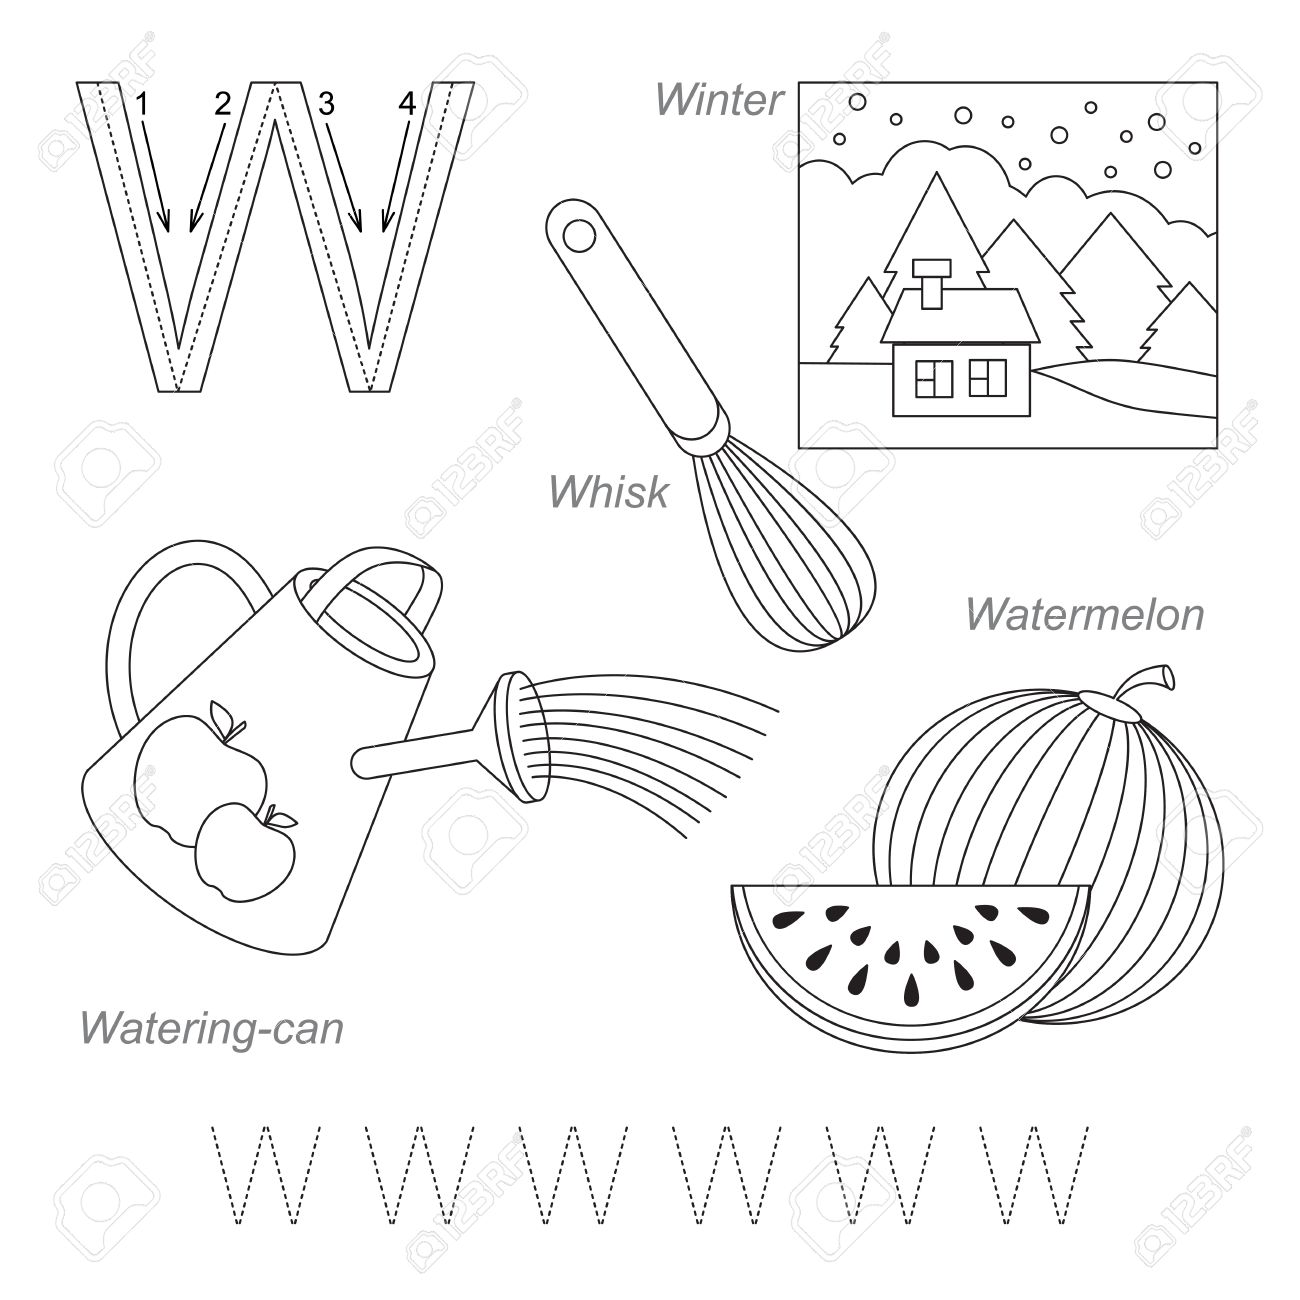 worksheet Letter W Tracing Worksheets tracing worksheet for children full english alphabet from a to z pictures letter